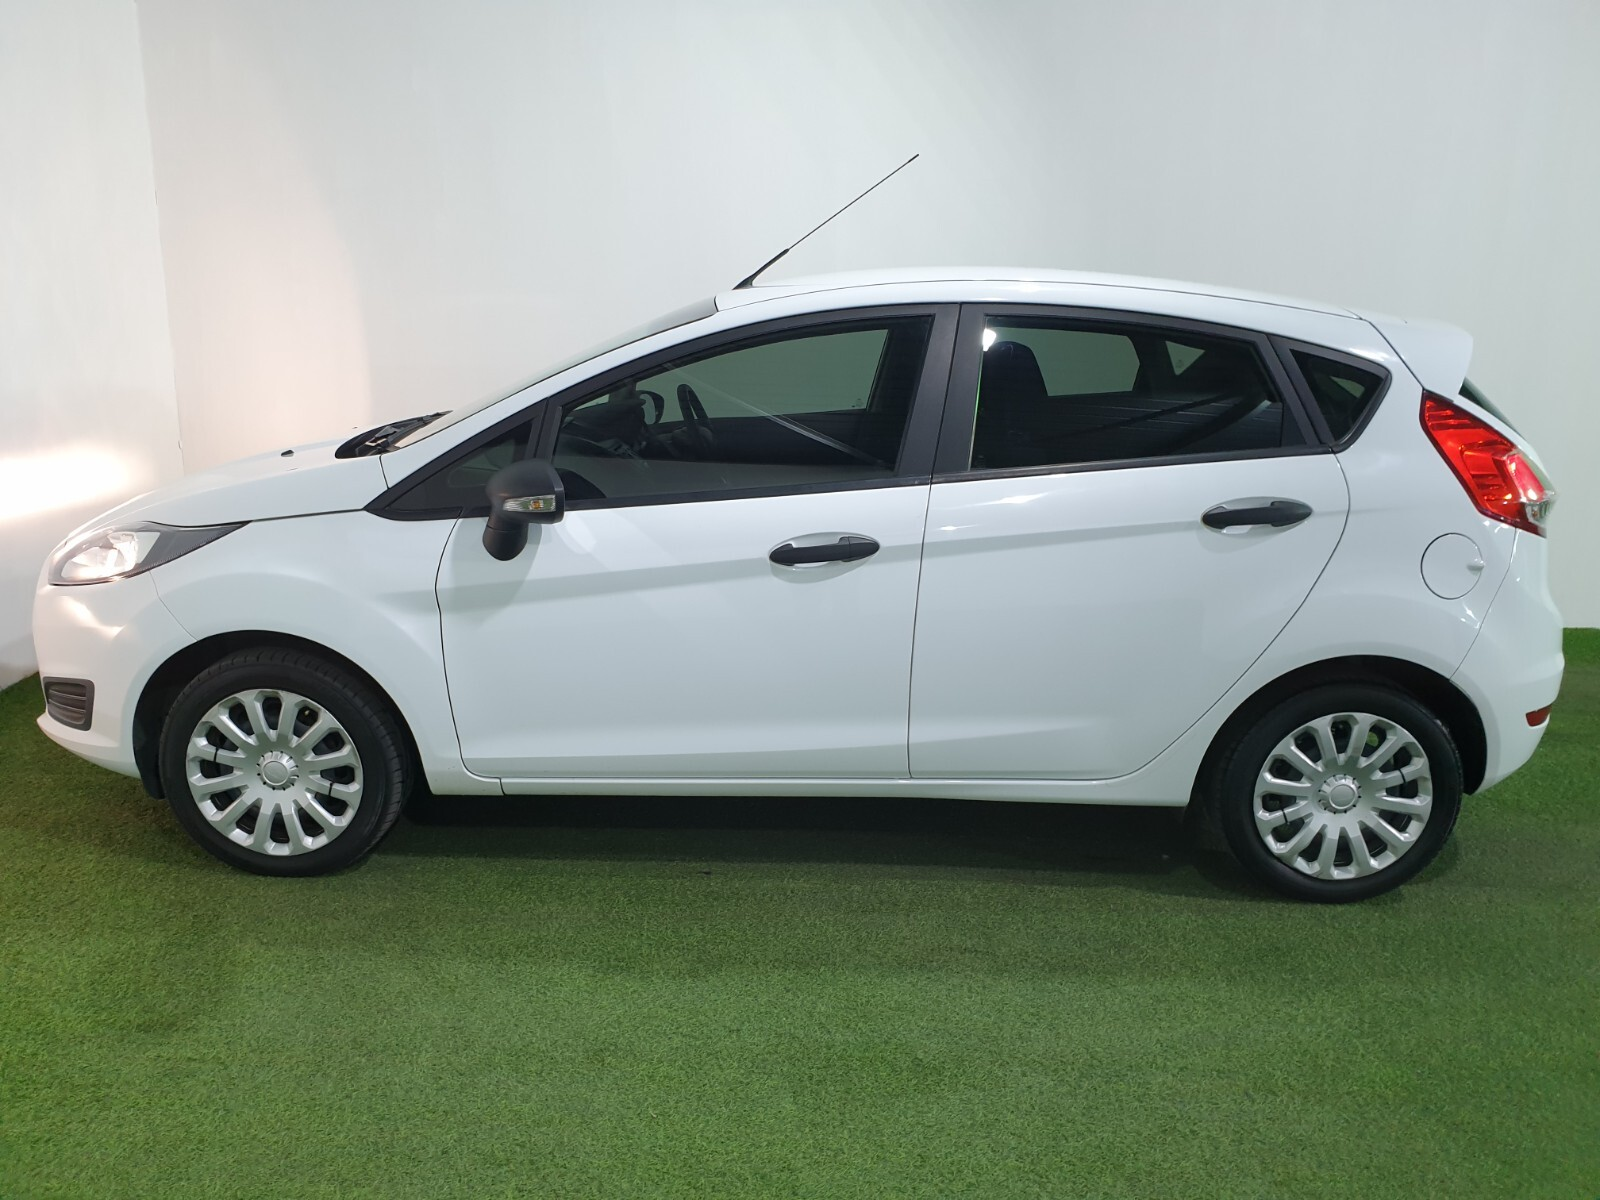 FORD 1.4 AMBIENTE 5 Dr Johannesburg 5327079